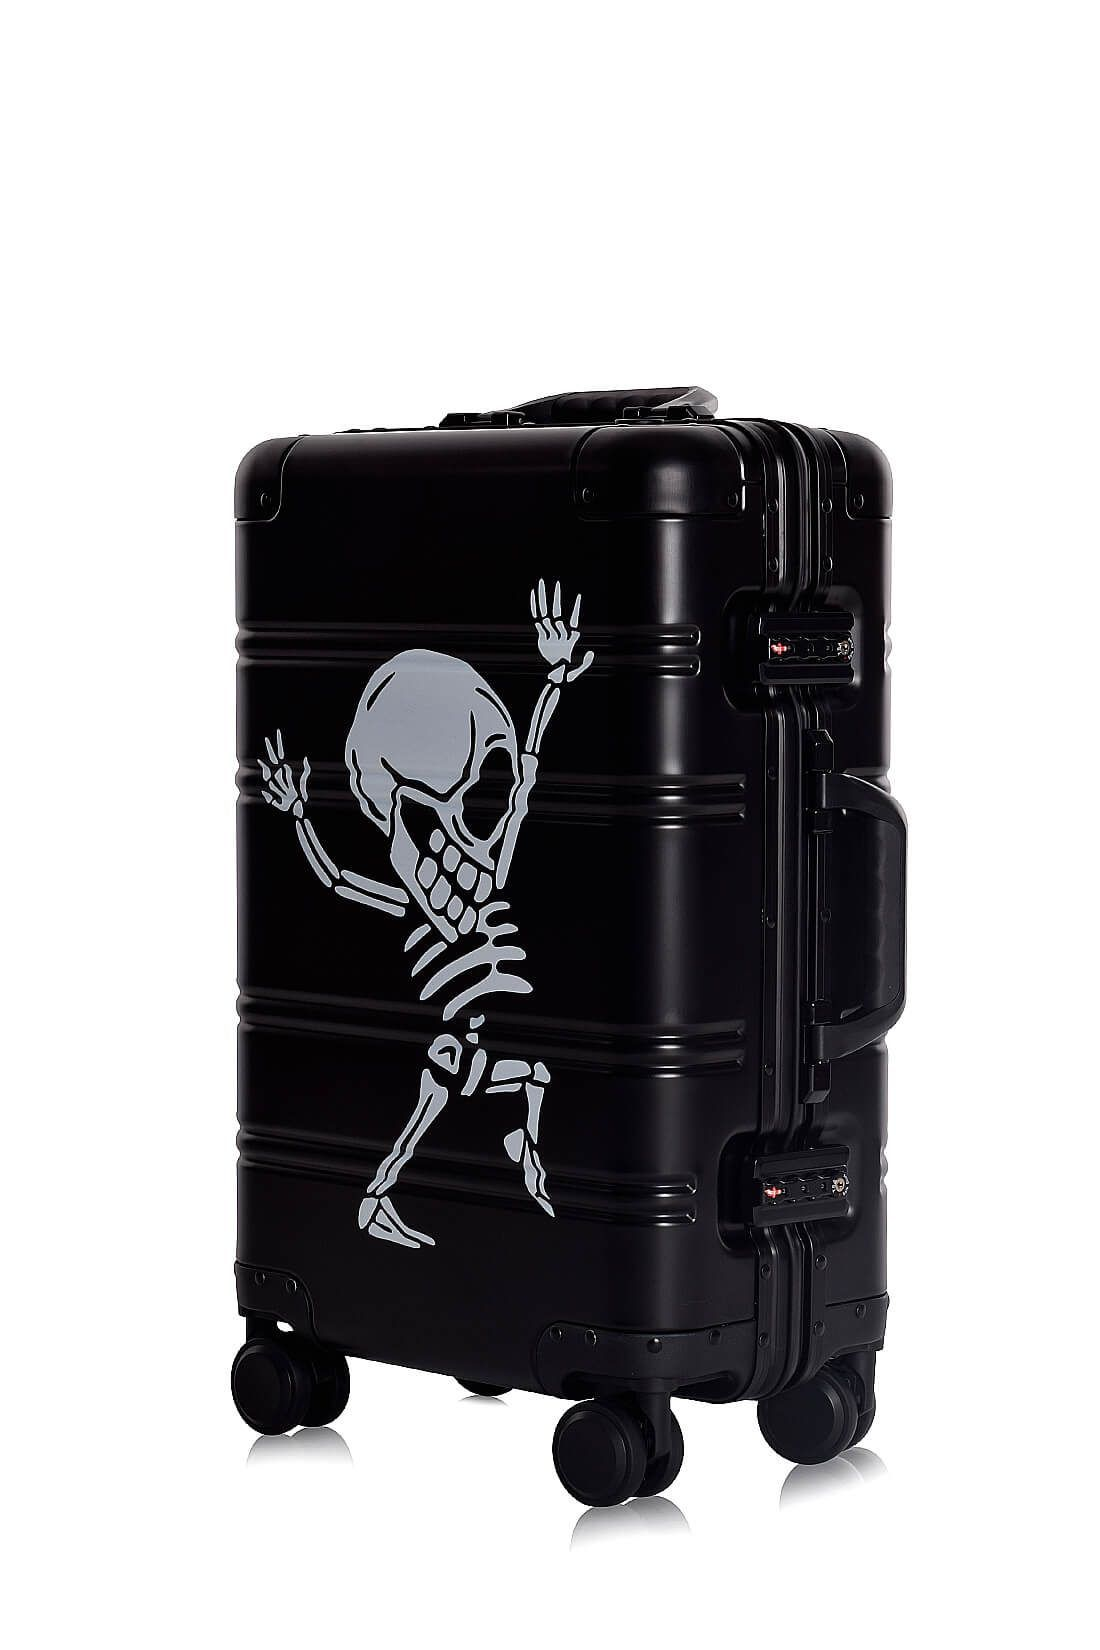 Aluminium Hand Cabin Luggage Premium Suitcase Trolley TOKYOTO LUGGAGE Model BLACK SKULL